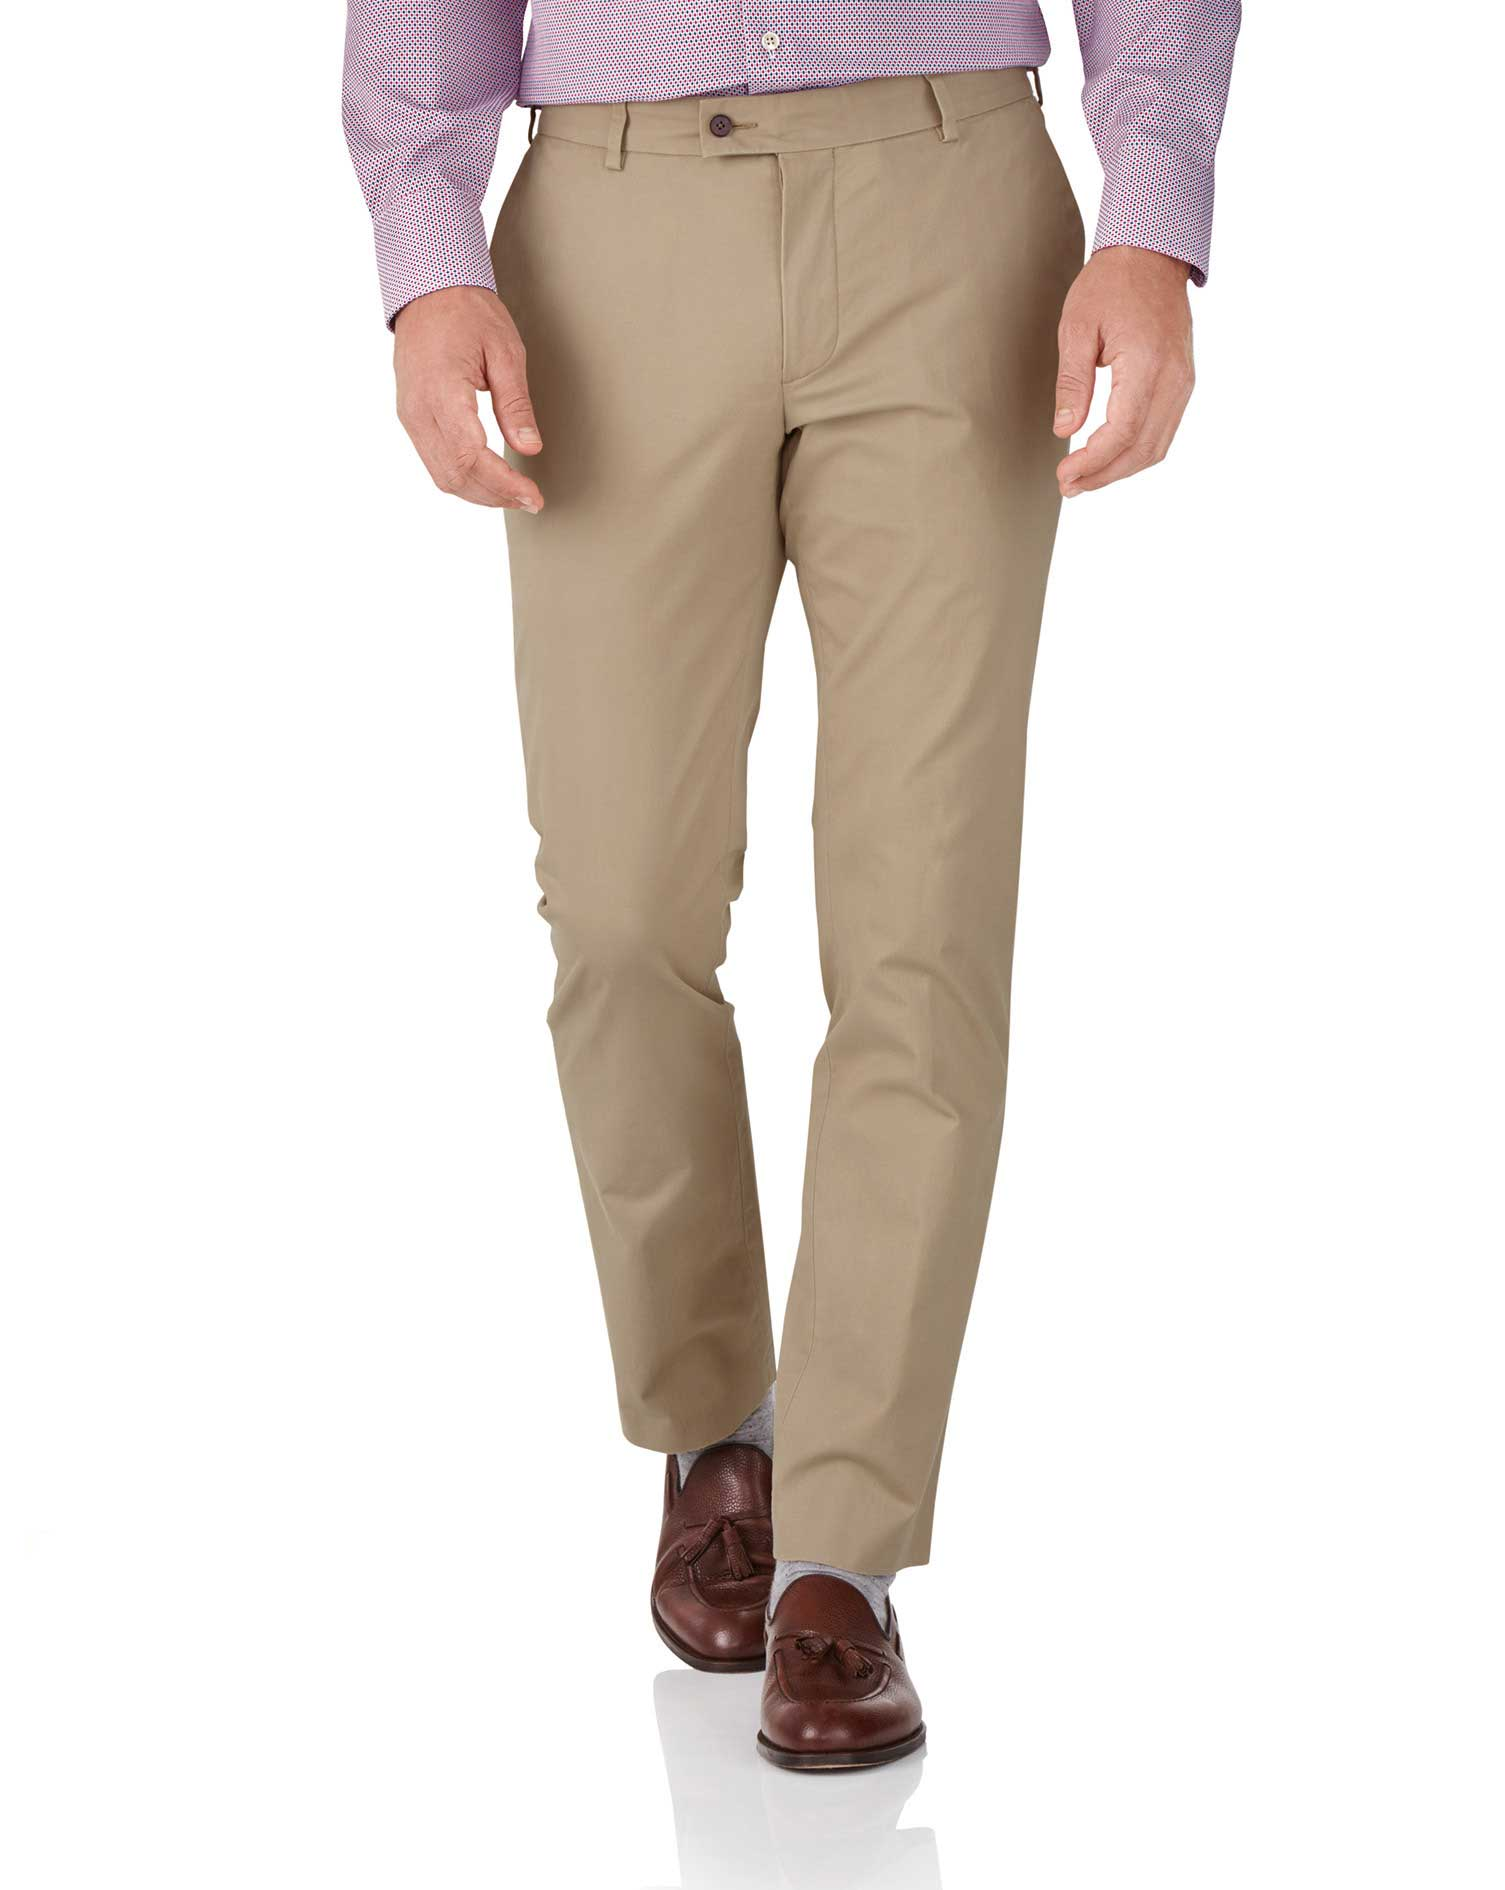 tan slim fit stretch cotton chino pants size w38 l32 by charles tyrwhitt